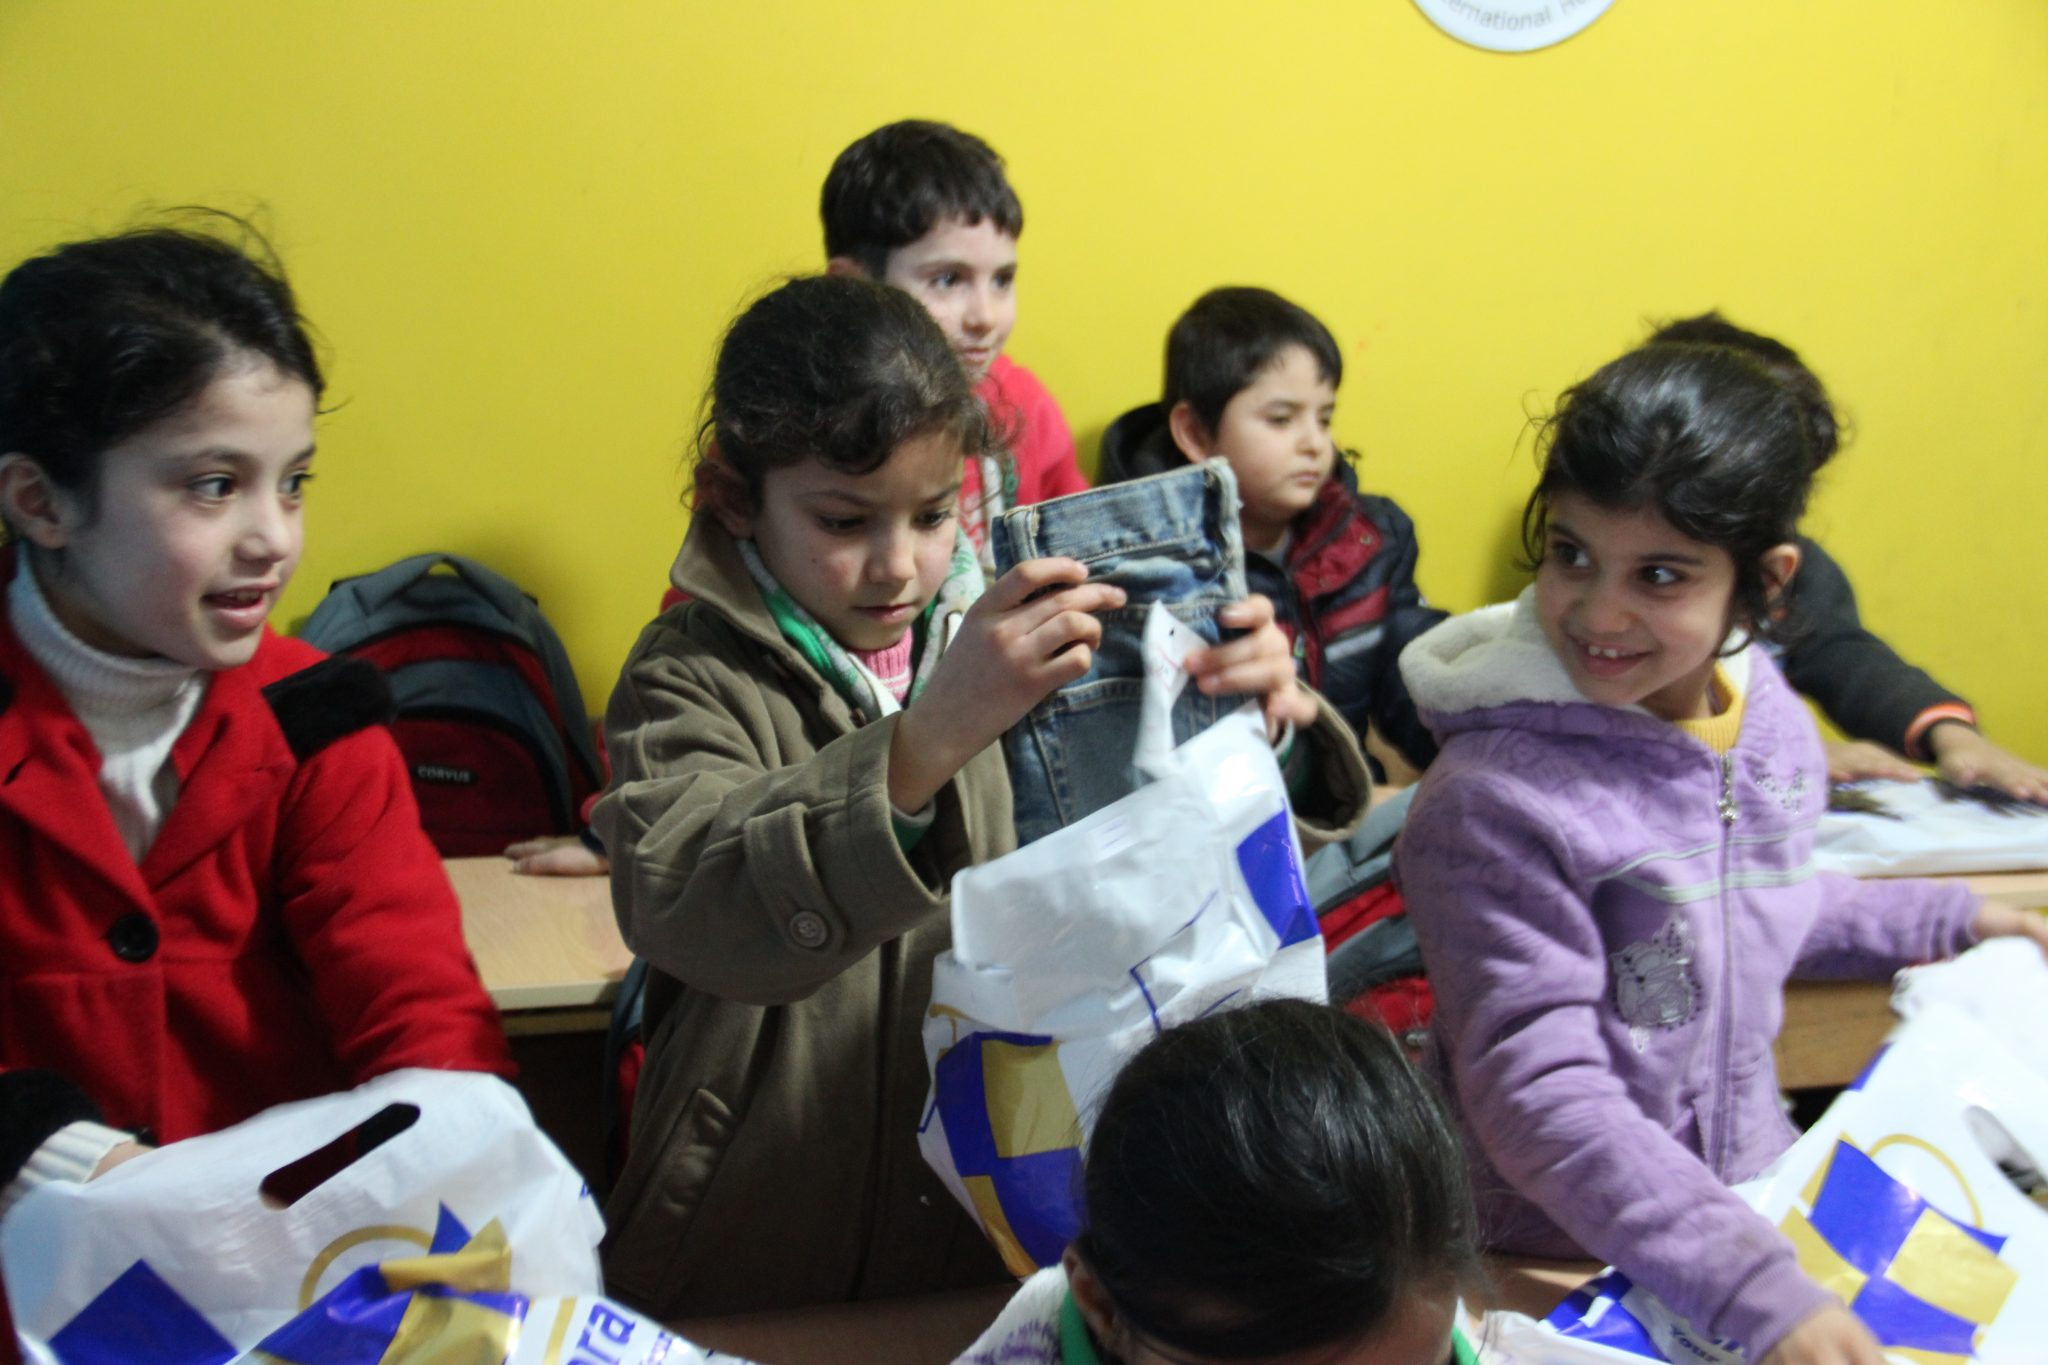 Our Christmas campaign brings presents to 510 refugee children in Lebanon